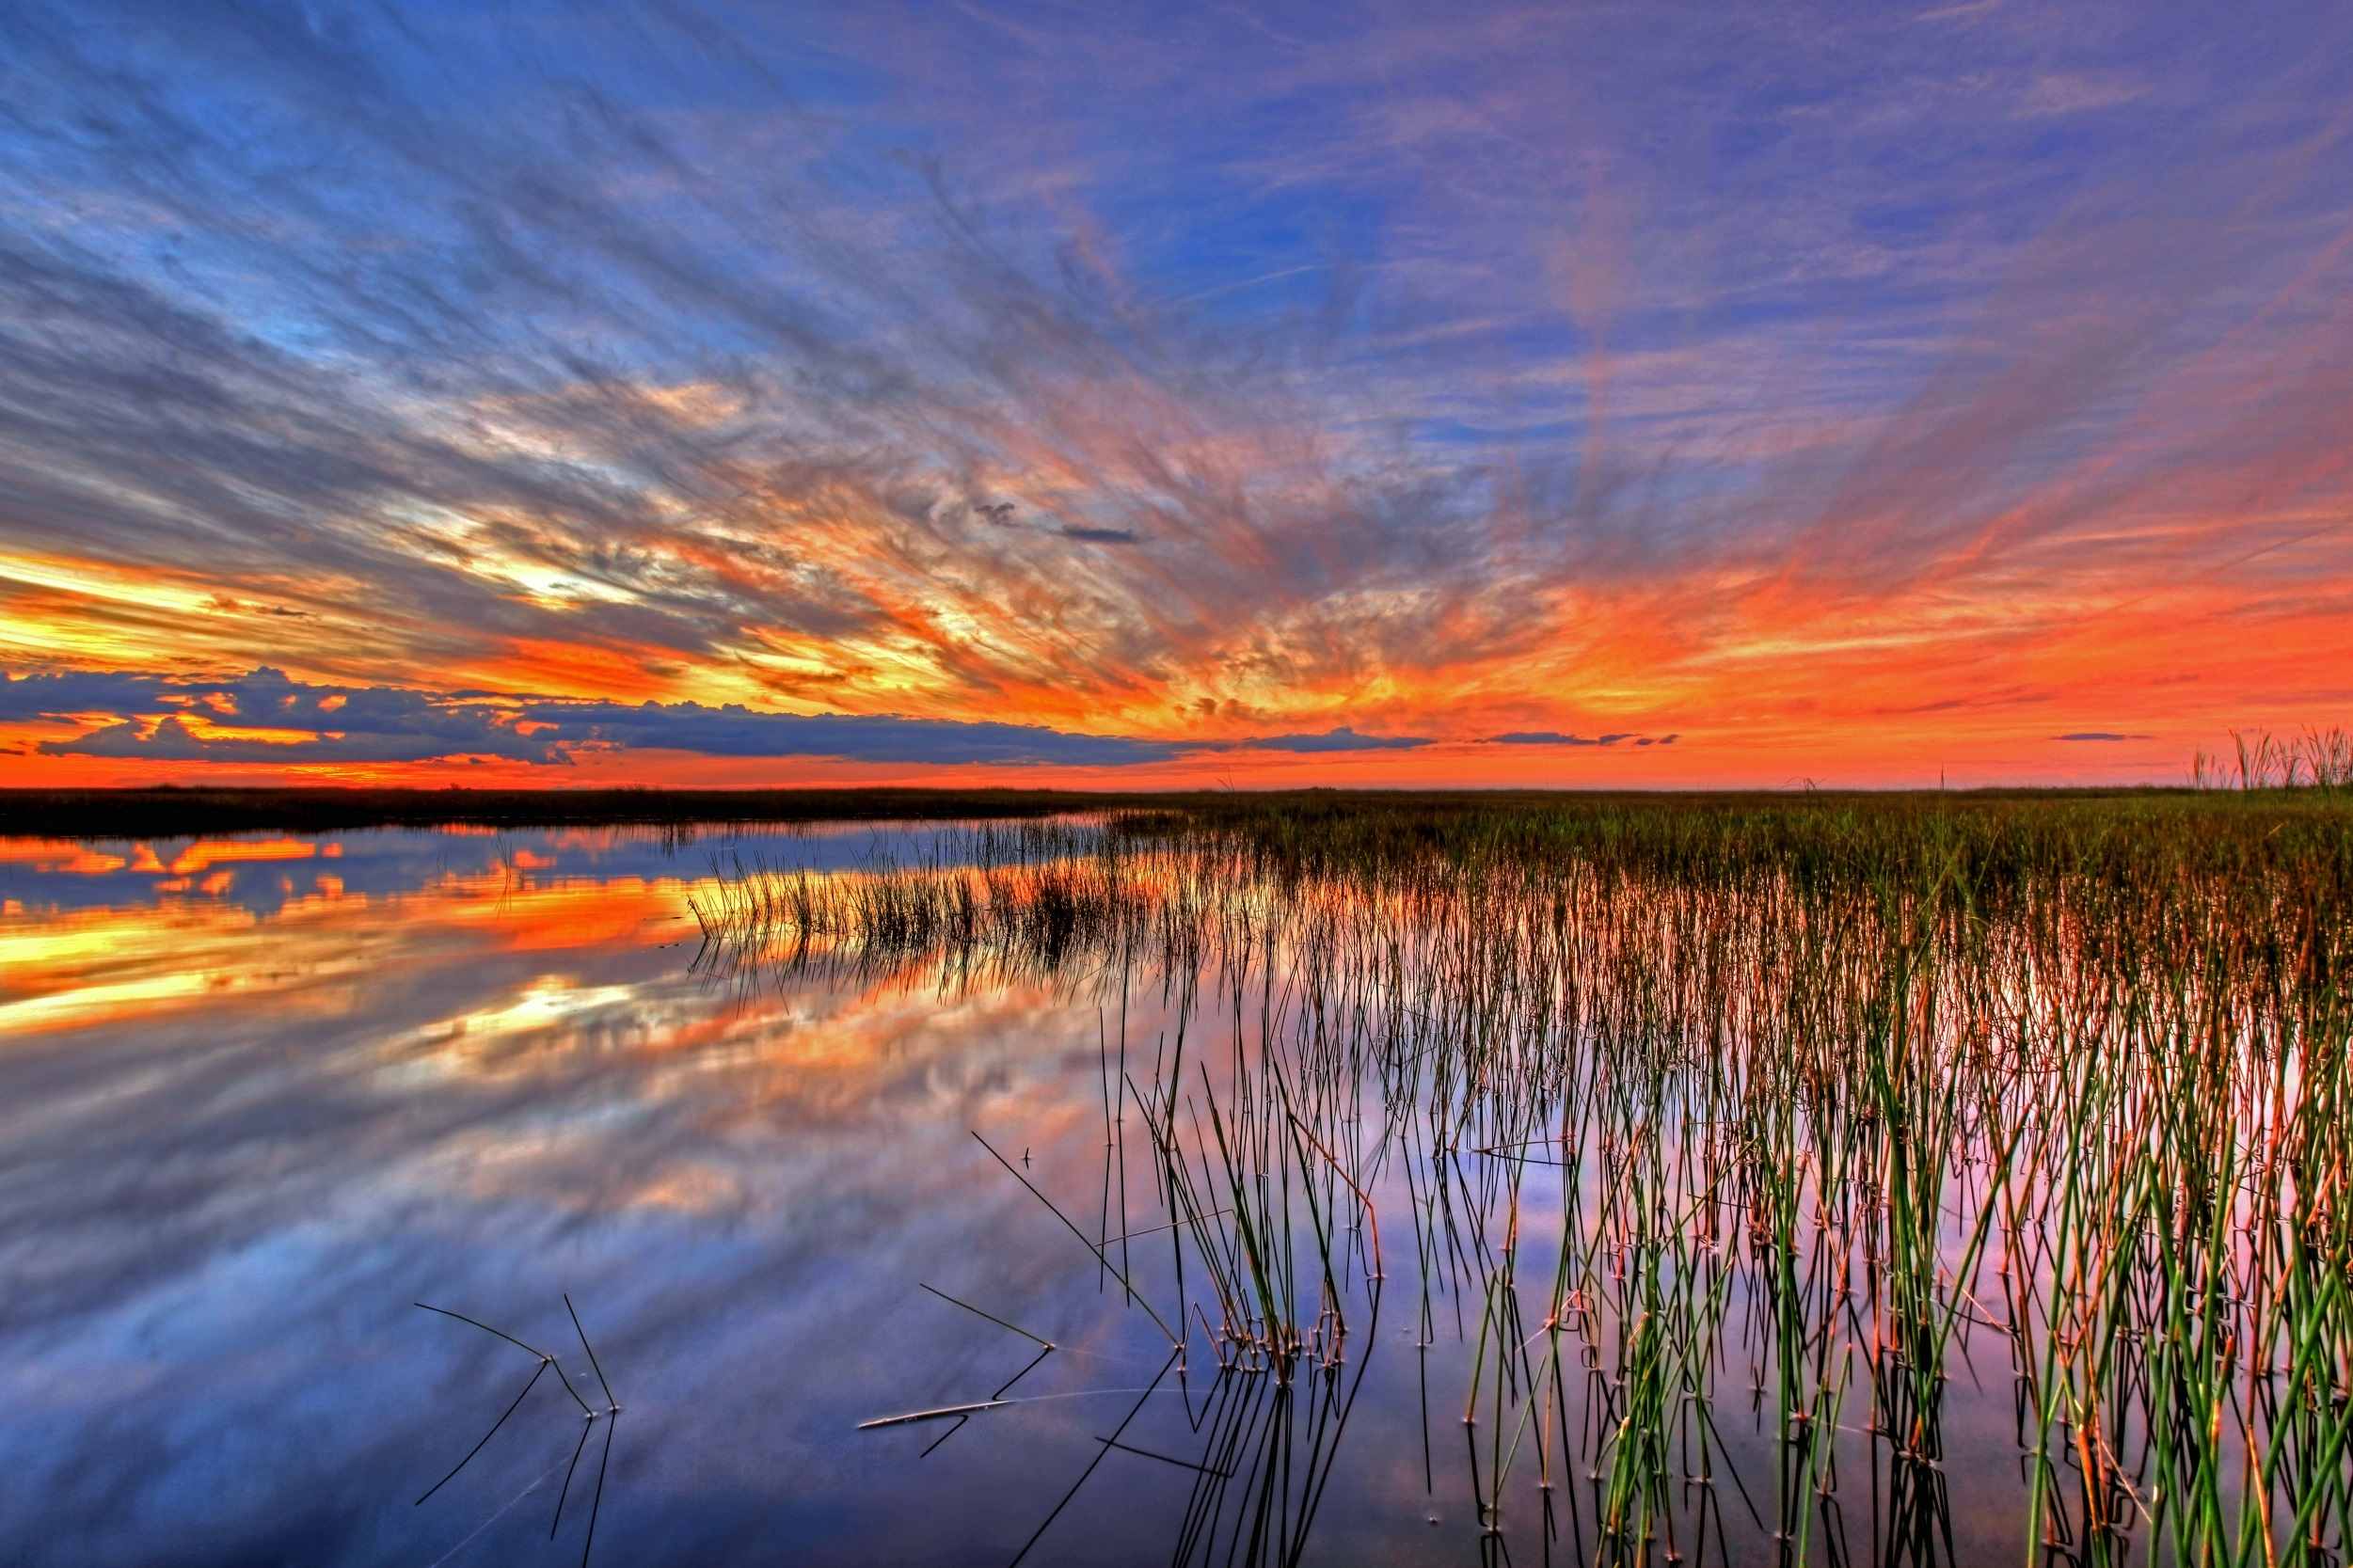 82392 free wallpaper 1080x2400 for phone, download images Nature, Swamp, Usa, United States, Florida, Everglades 1080x2400 for mobile